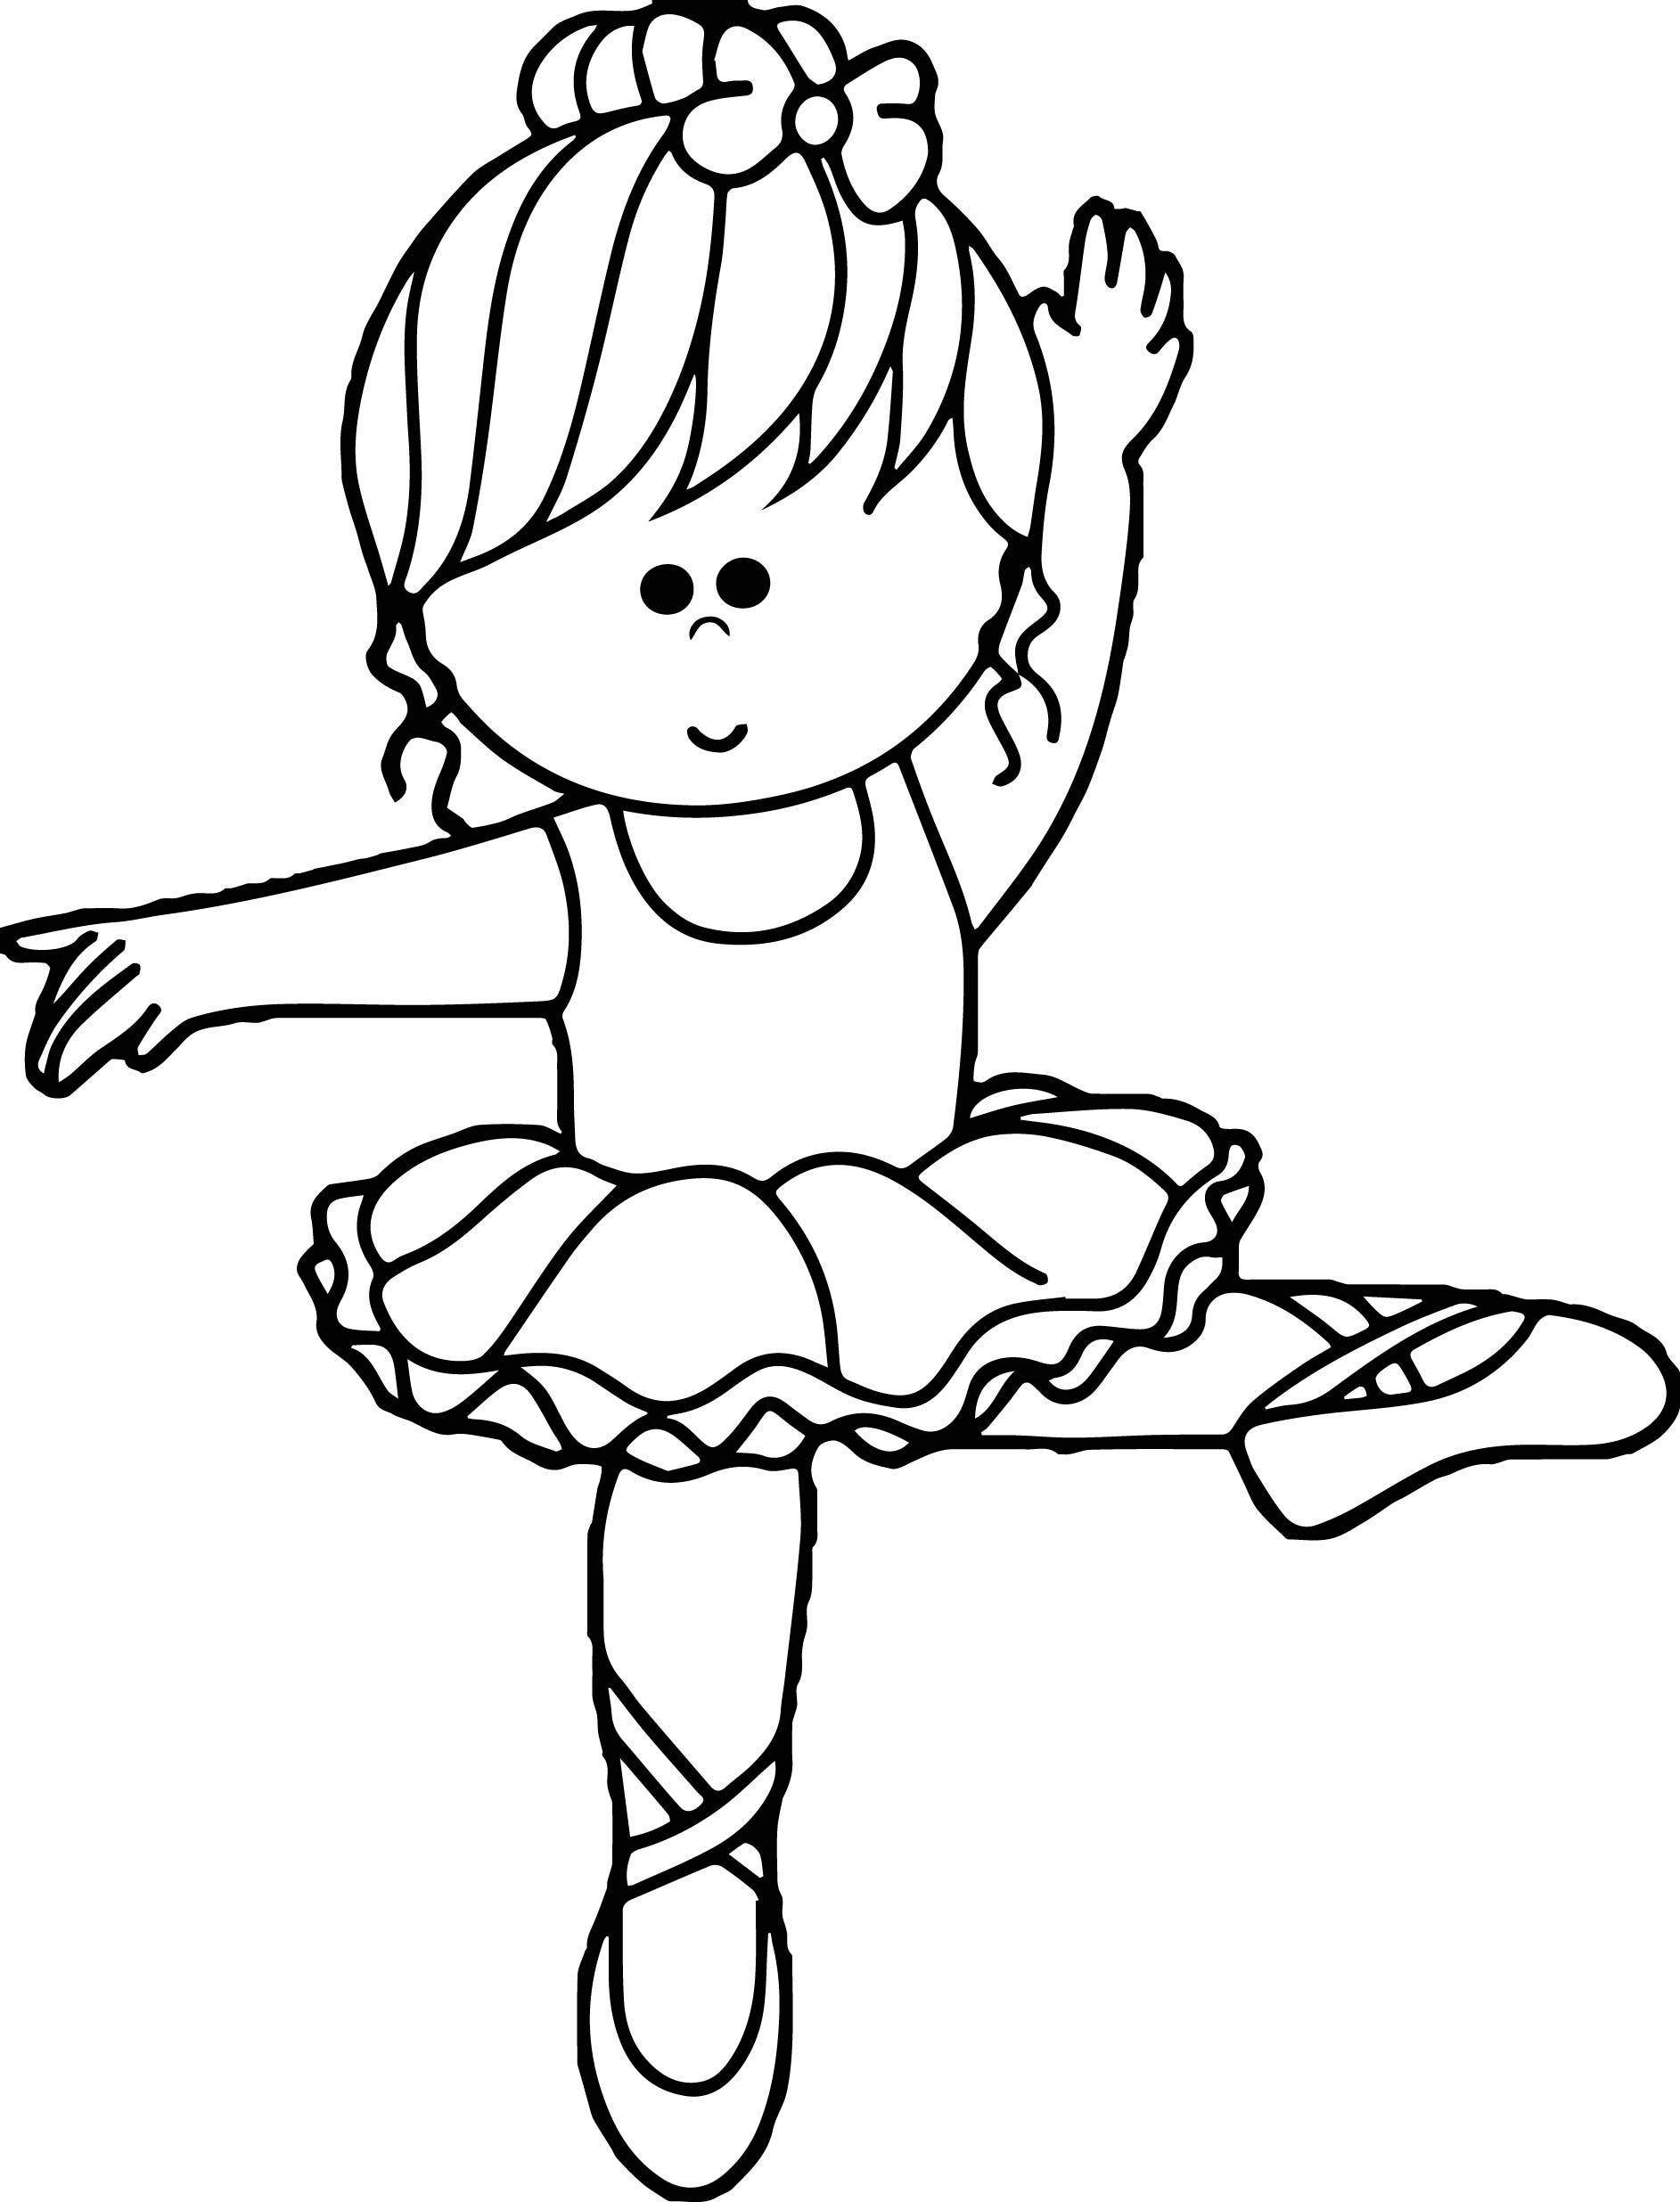 It's just a graphic of Luscious dance coloring pages for kids